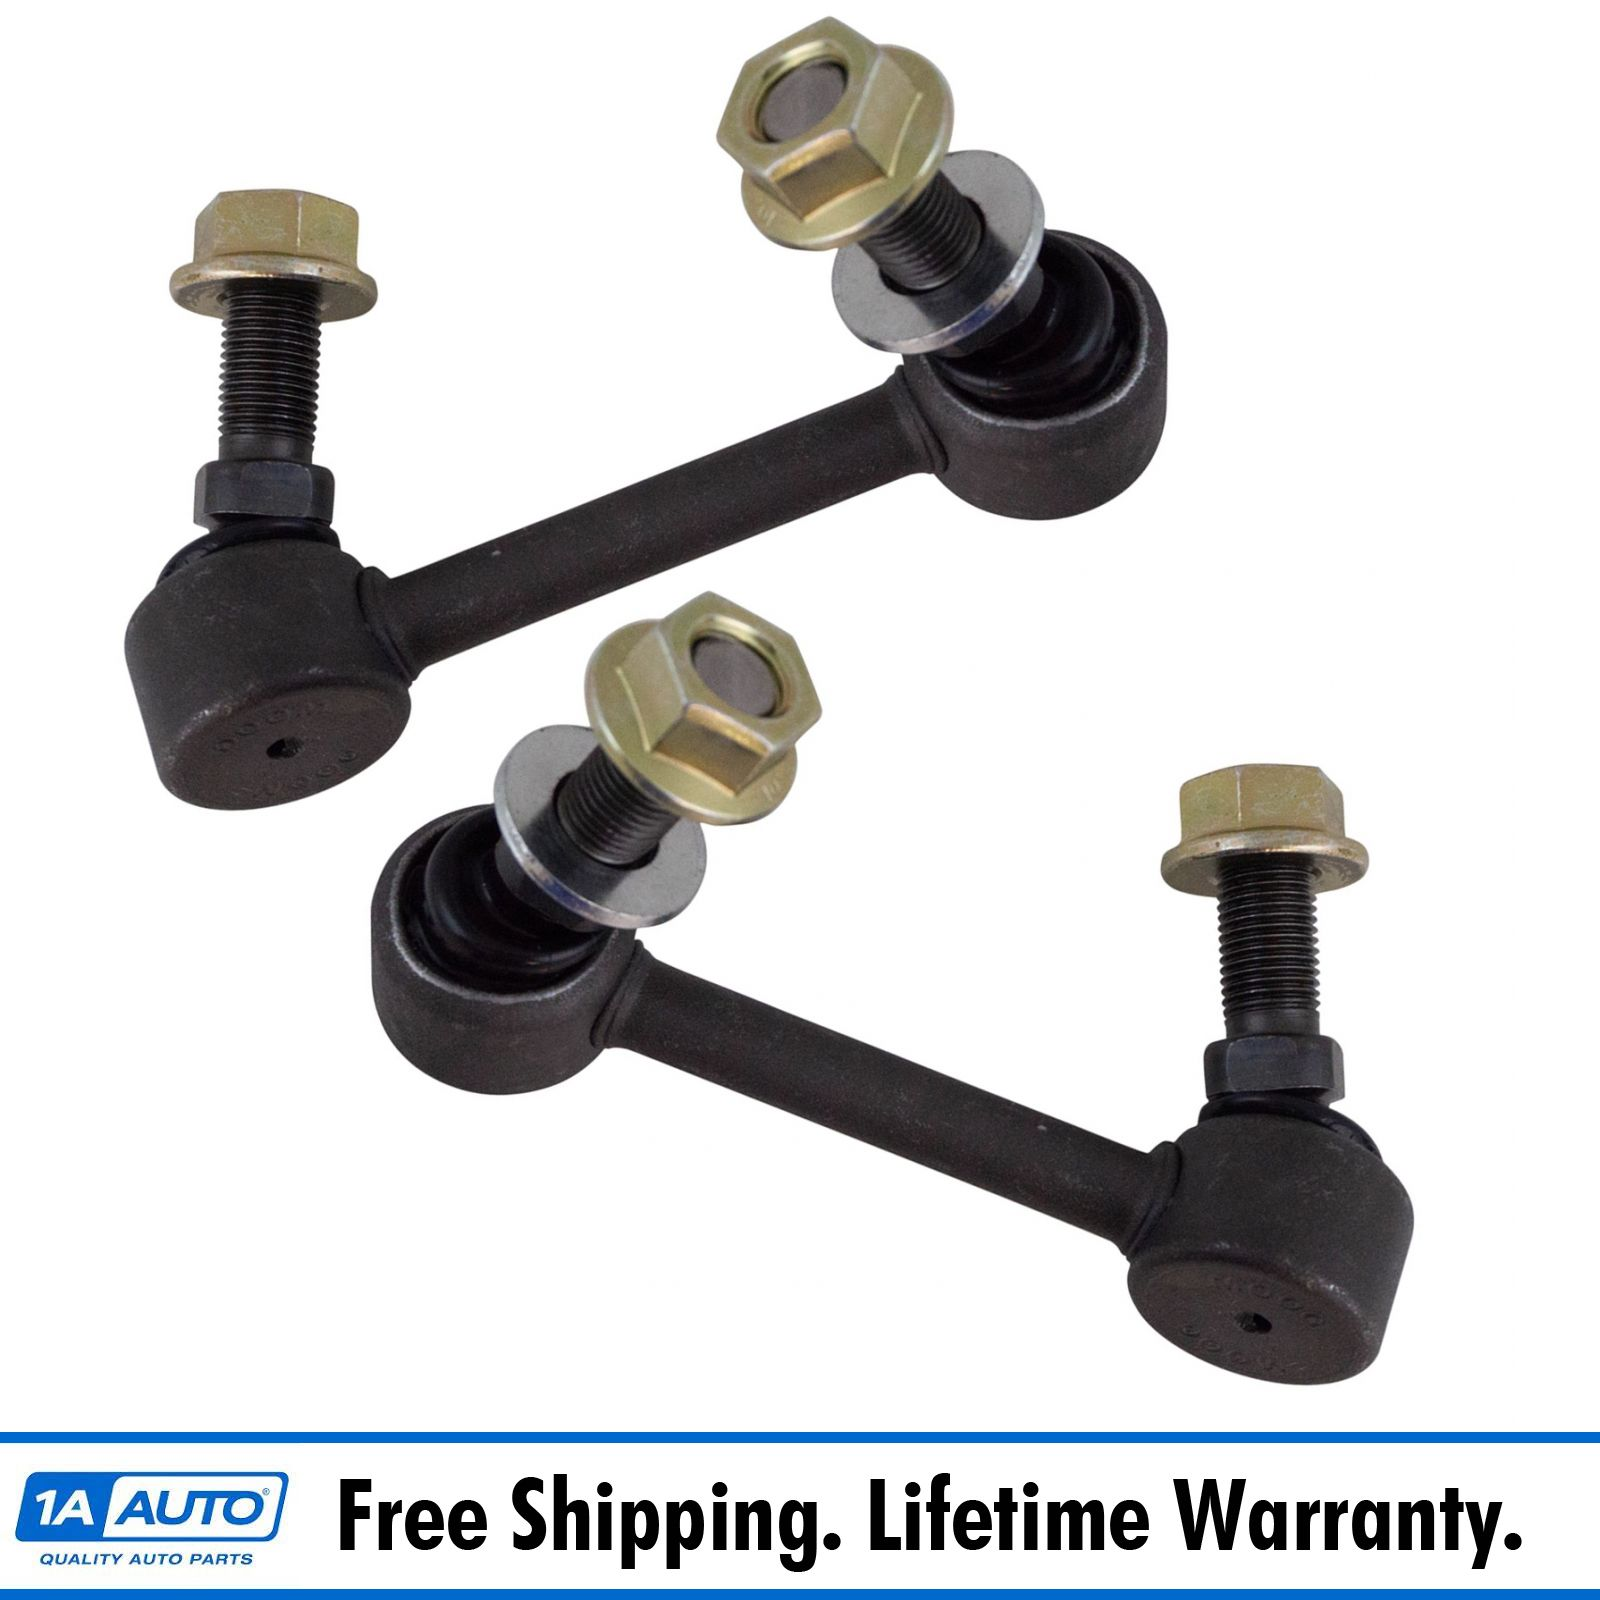 Pair Set of 2 Rear Stabilizer Bar Link Kits Moog for Buick Cadillac Oldsmobile